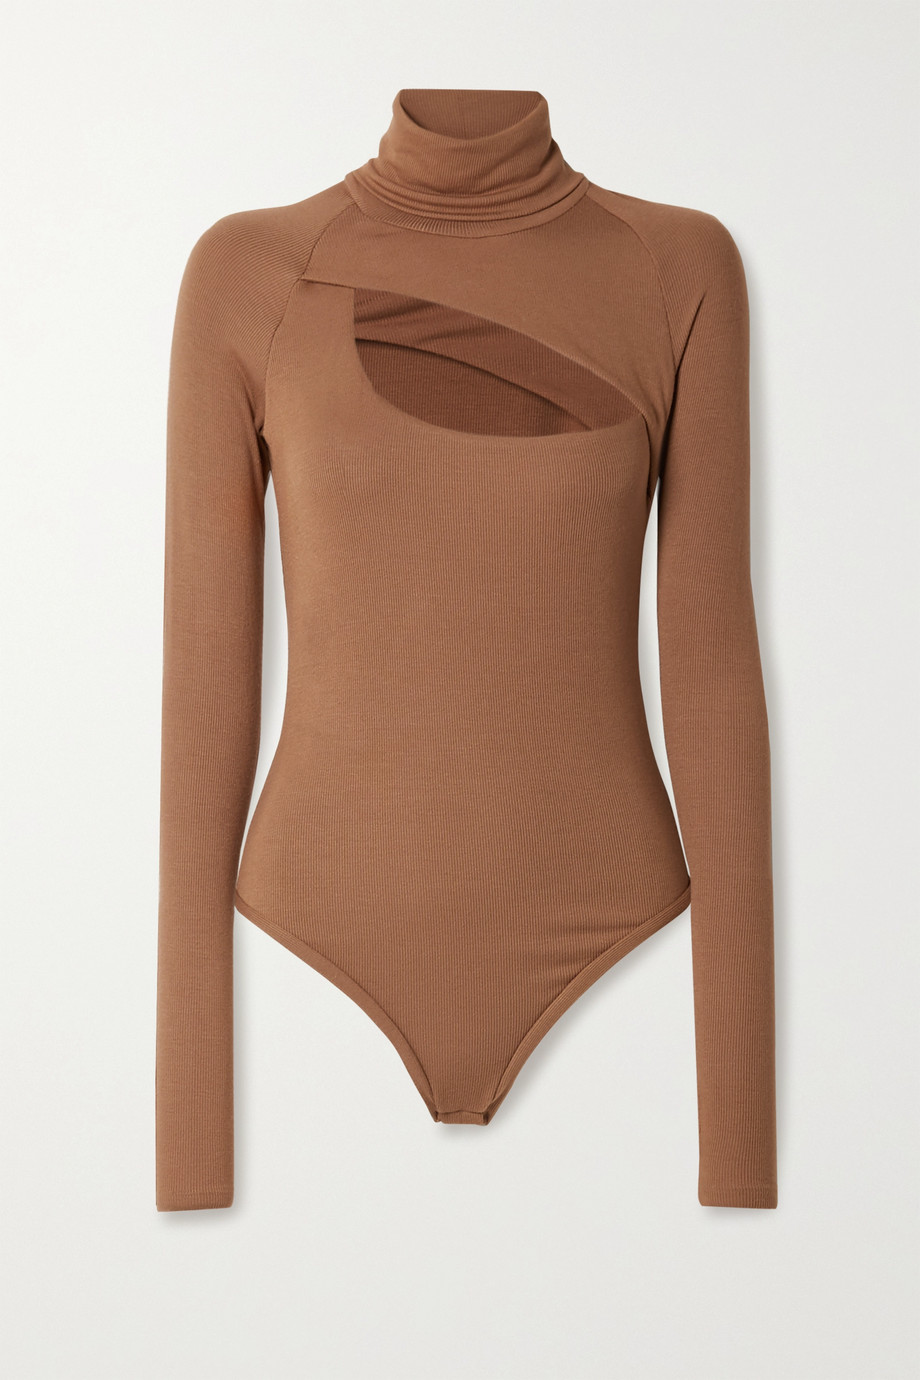 Alix NYC Carder String-Body aus geripptem Jersey aus Stretch-Modal mit Cut-out